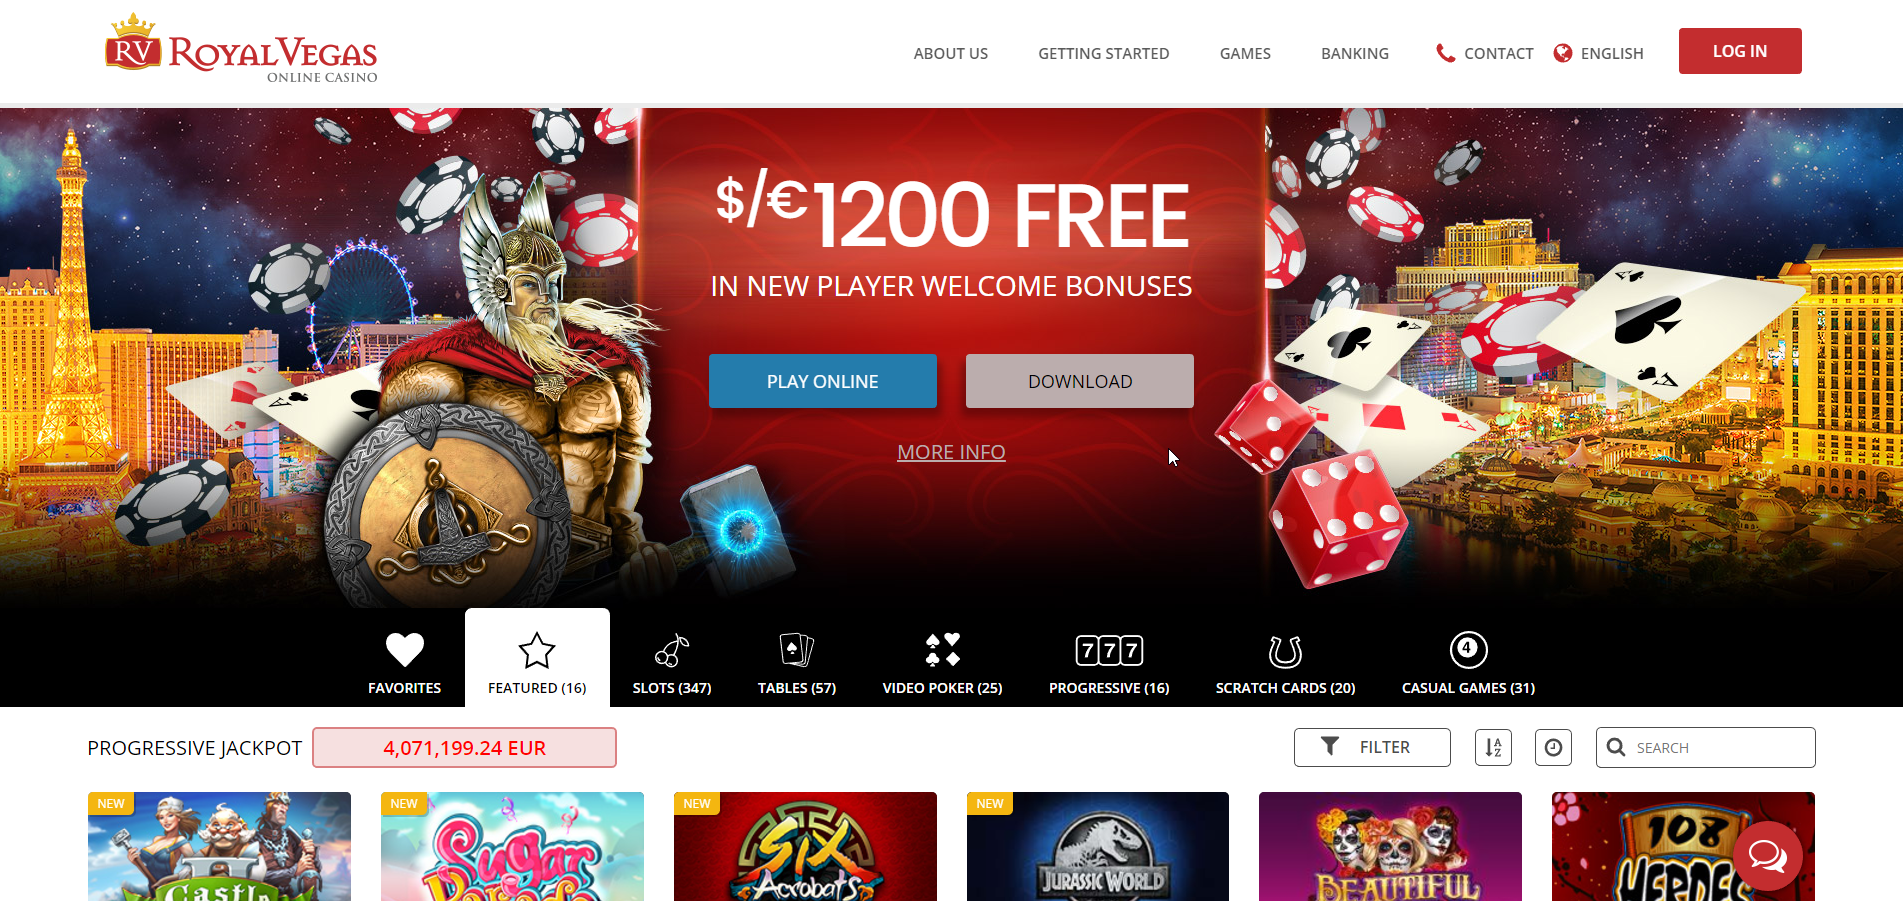 MiamiClub Casino Online Review With Promotions & Bonuses